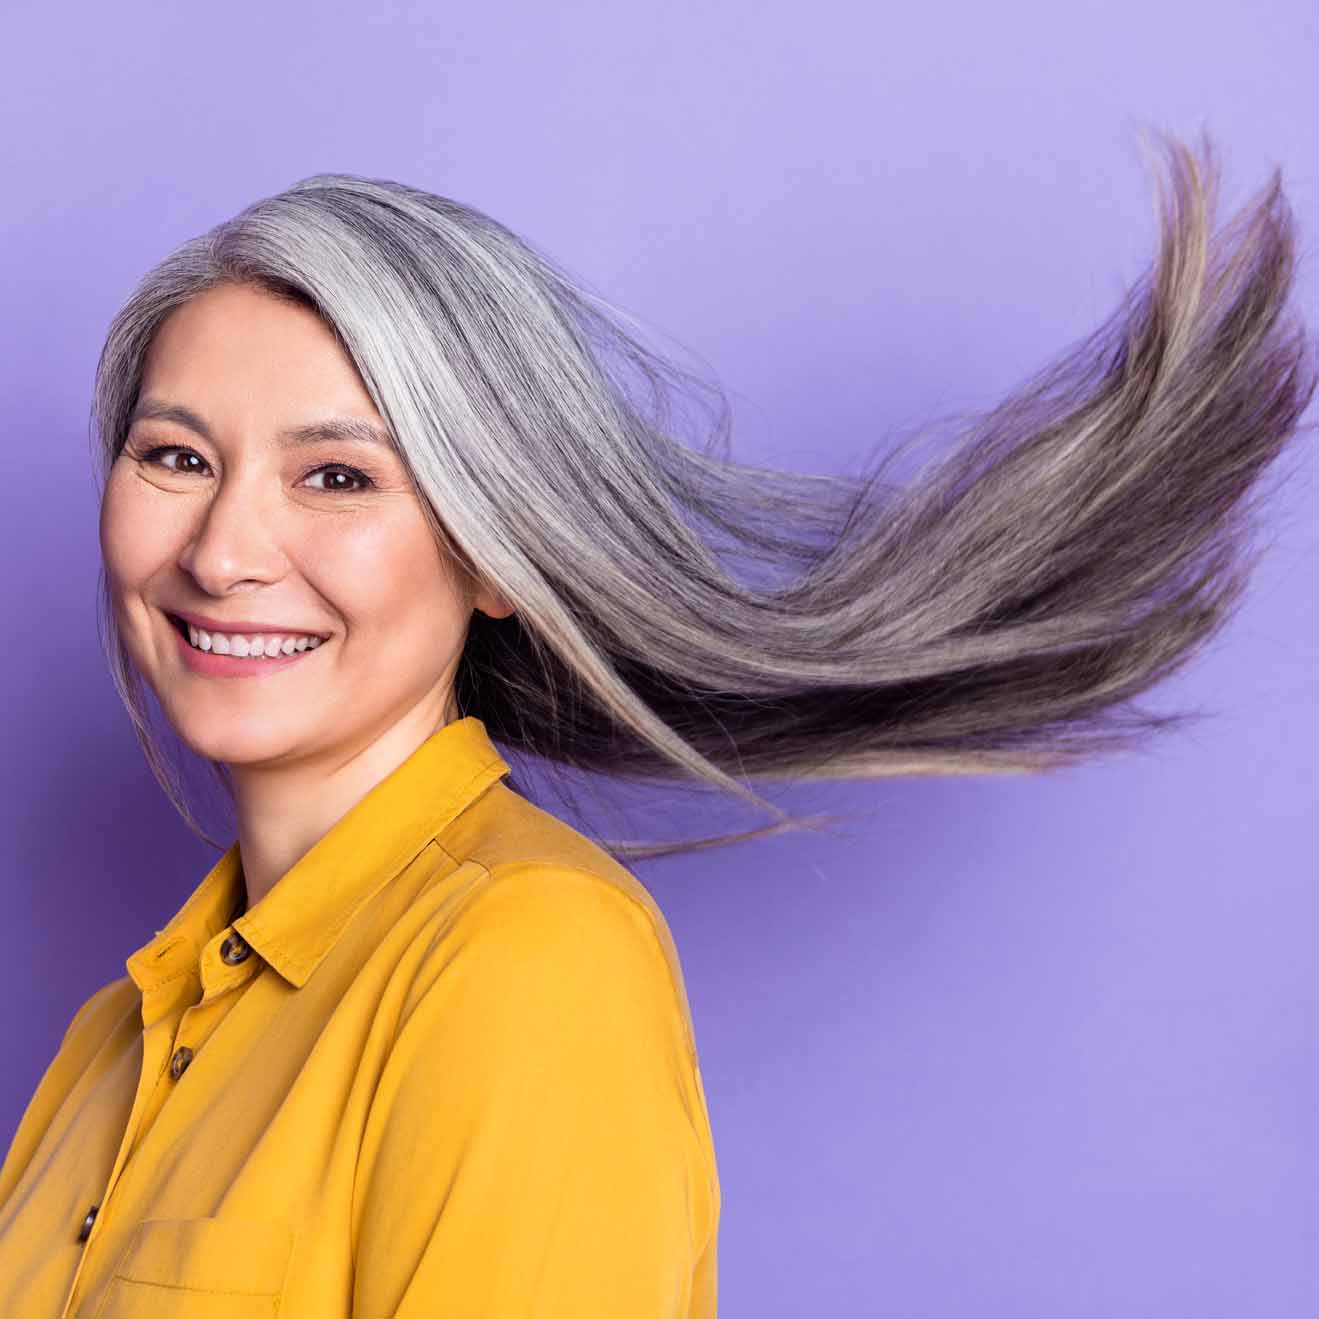 Gray hair woman hair flying isolated over bright violet purple color background.